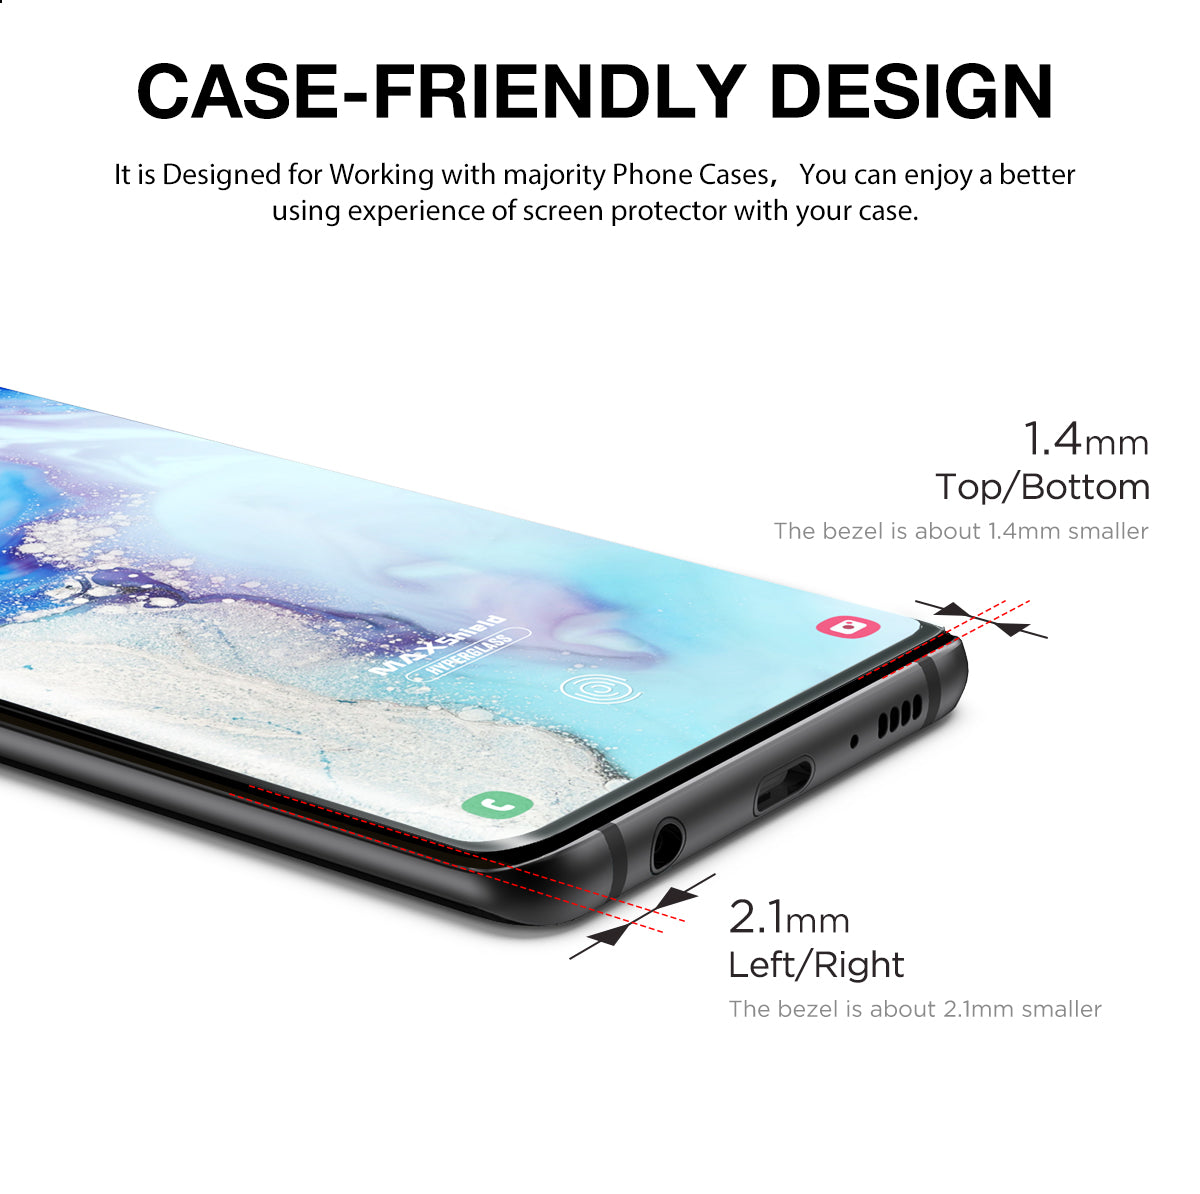 Galaxy S10 Plus Case Friendly Tempered Glass Screen Protector